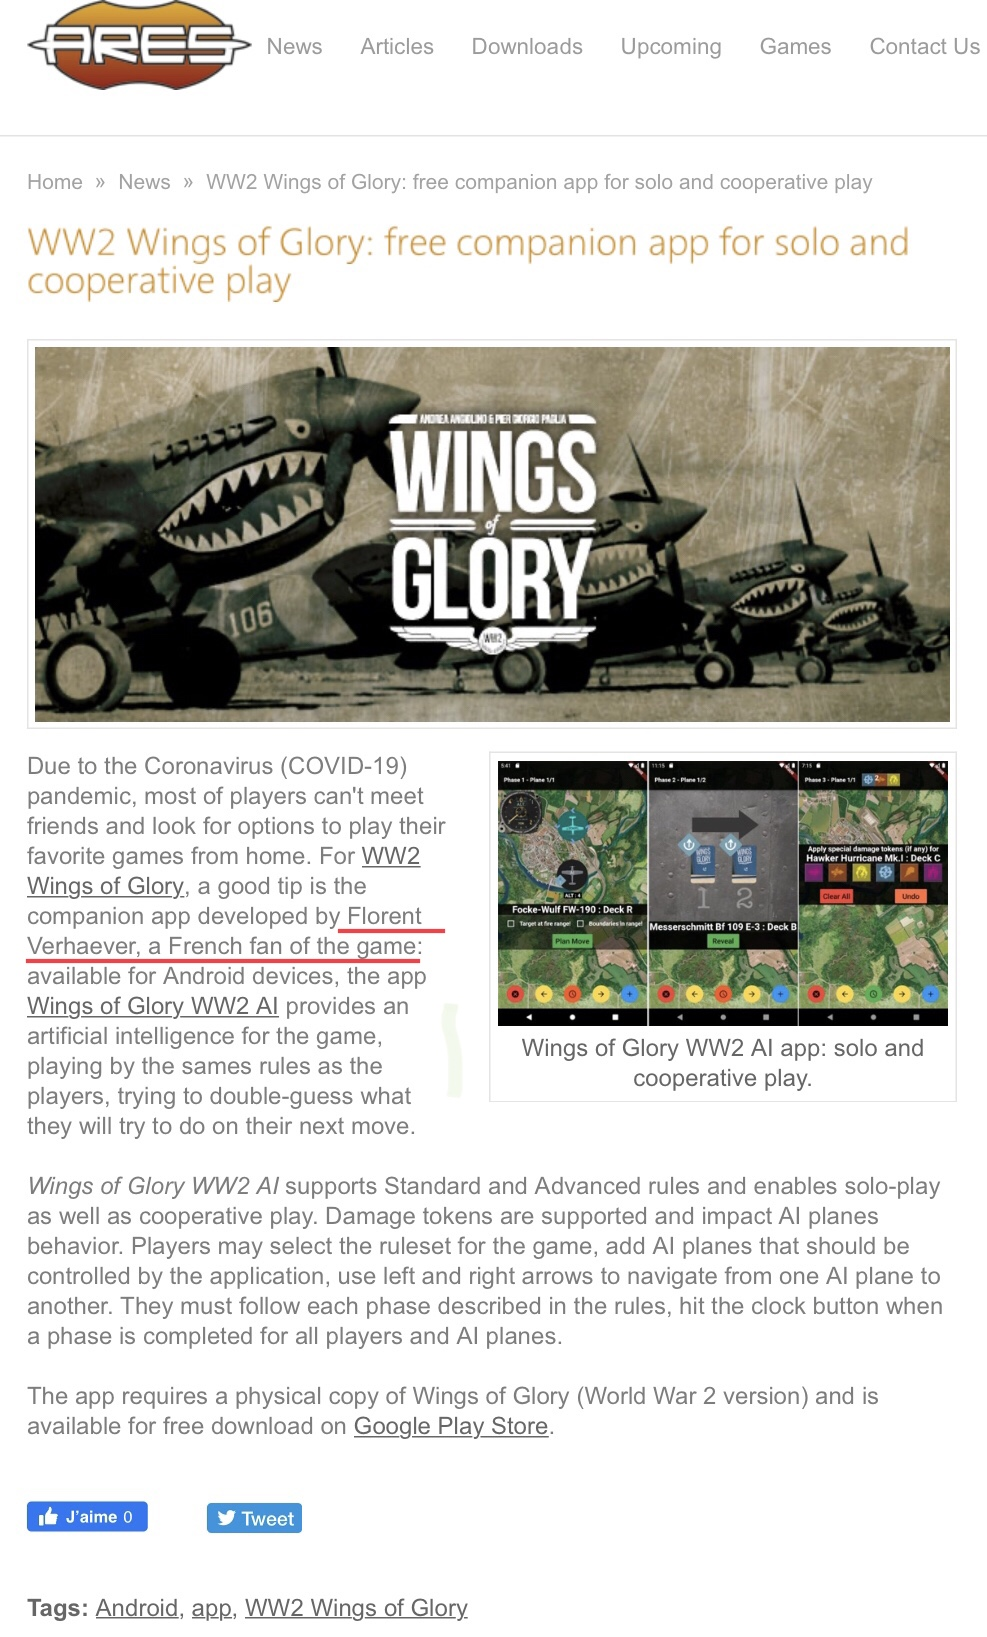 Application gratuite pour Wings of Glory WW2 A3f6a310